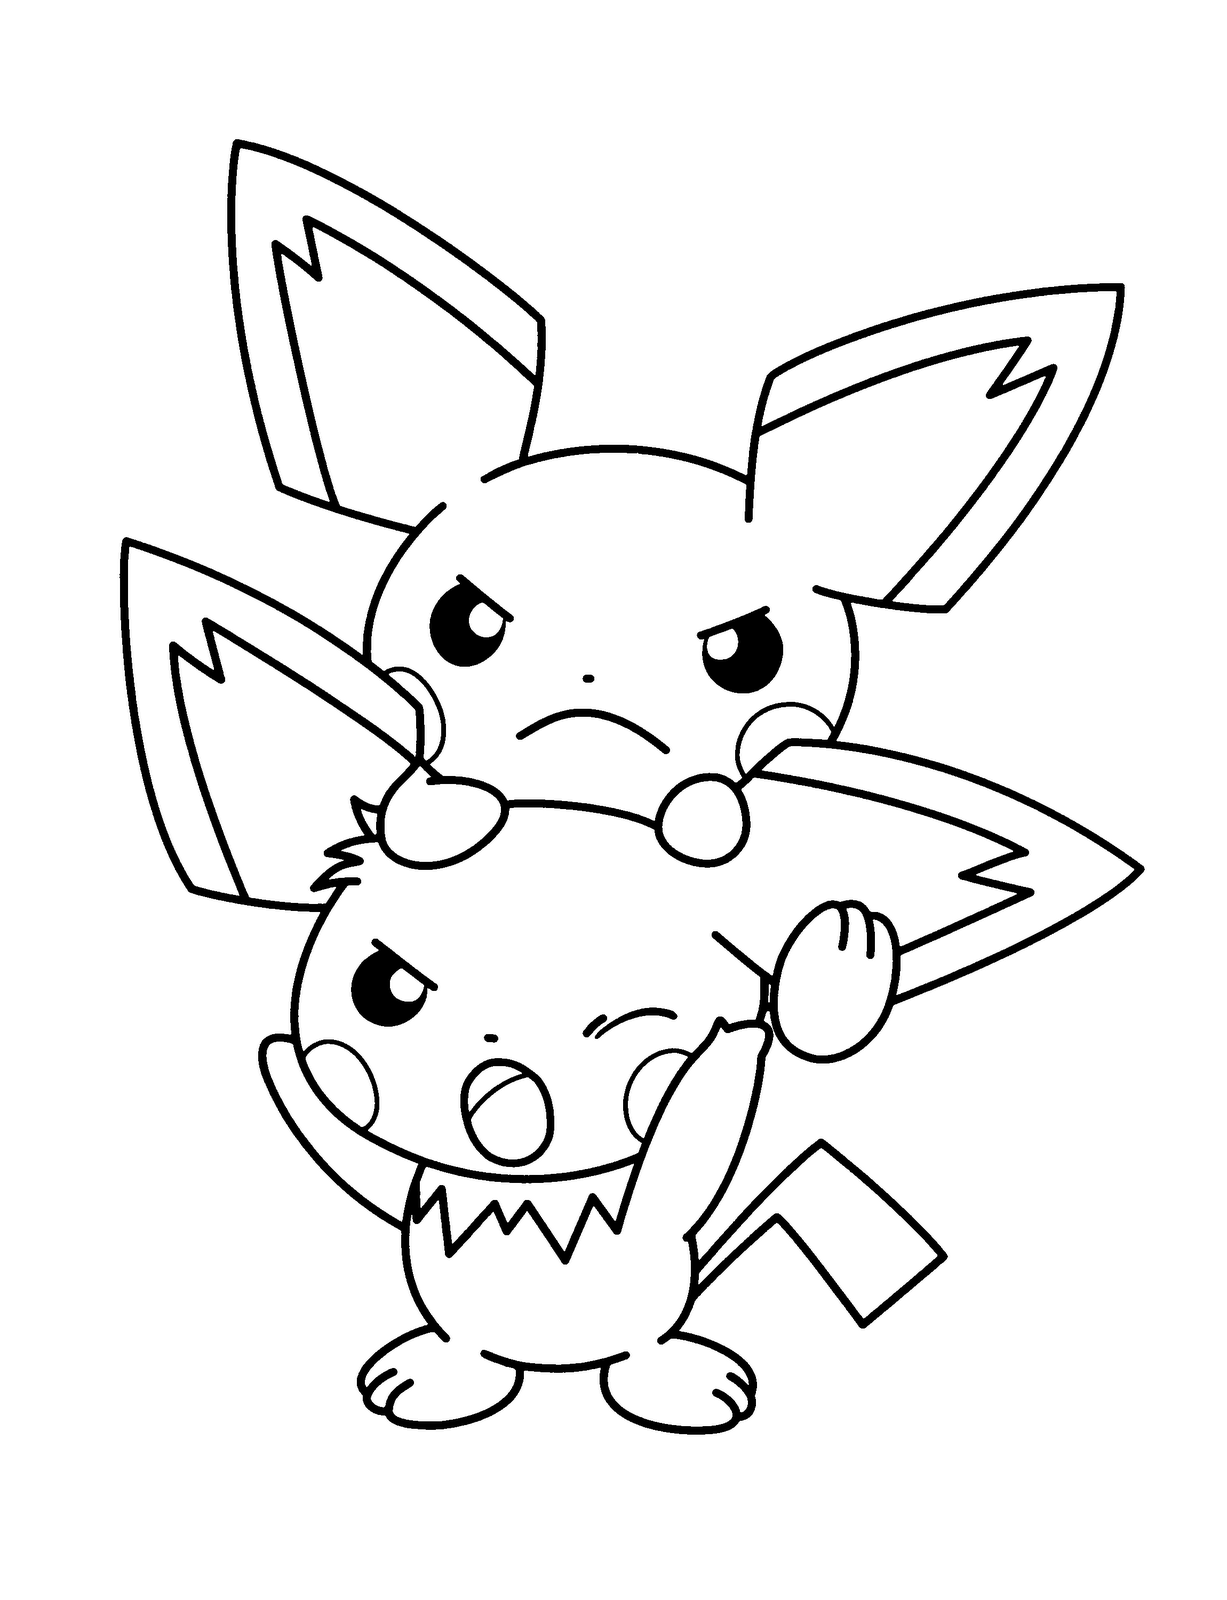 1227x1600 Drawn Pikachu Pokemon Coloring And Pages Ex